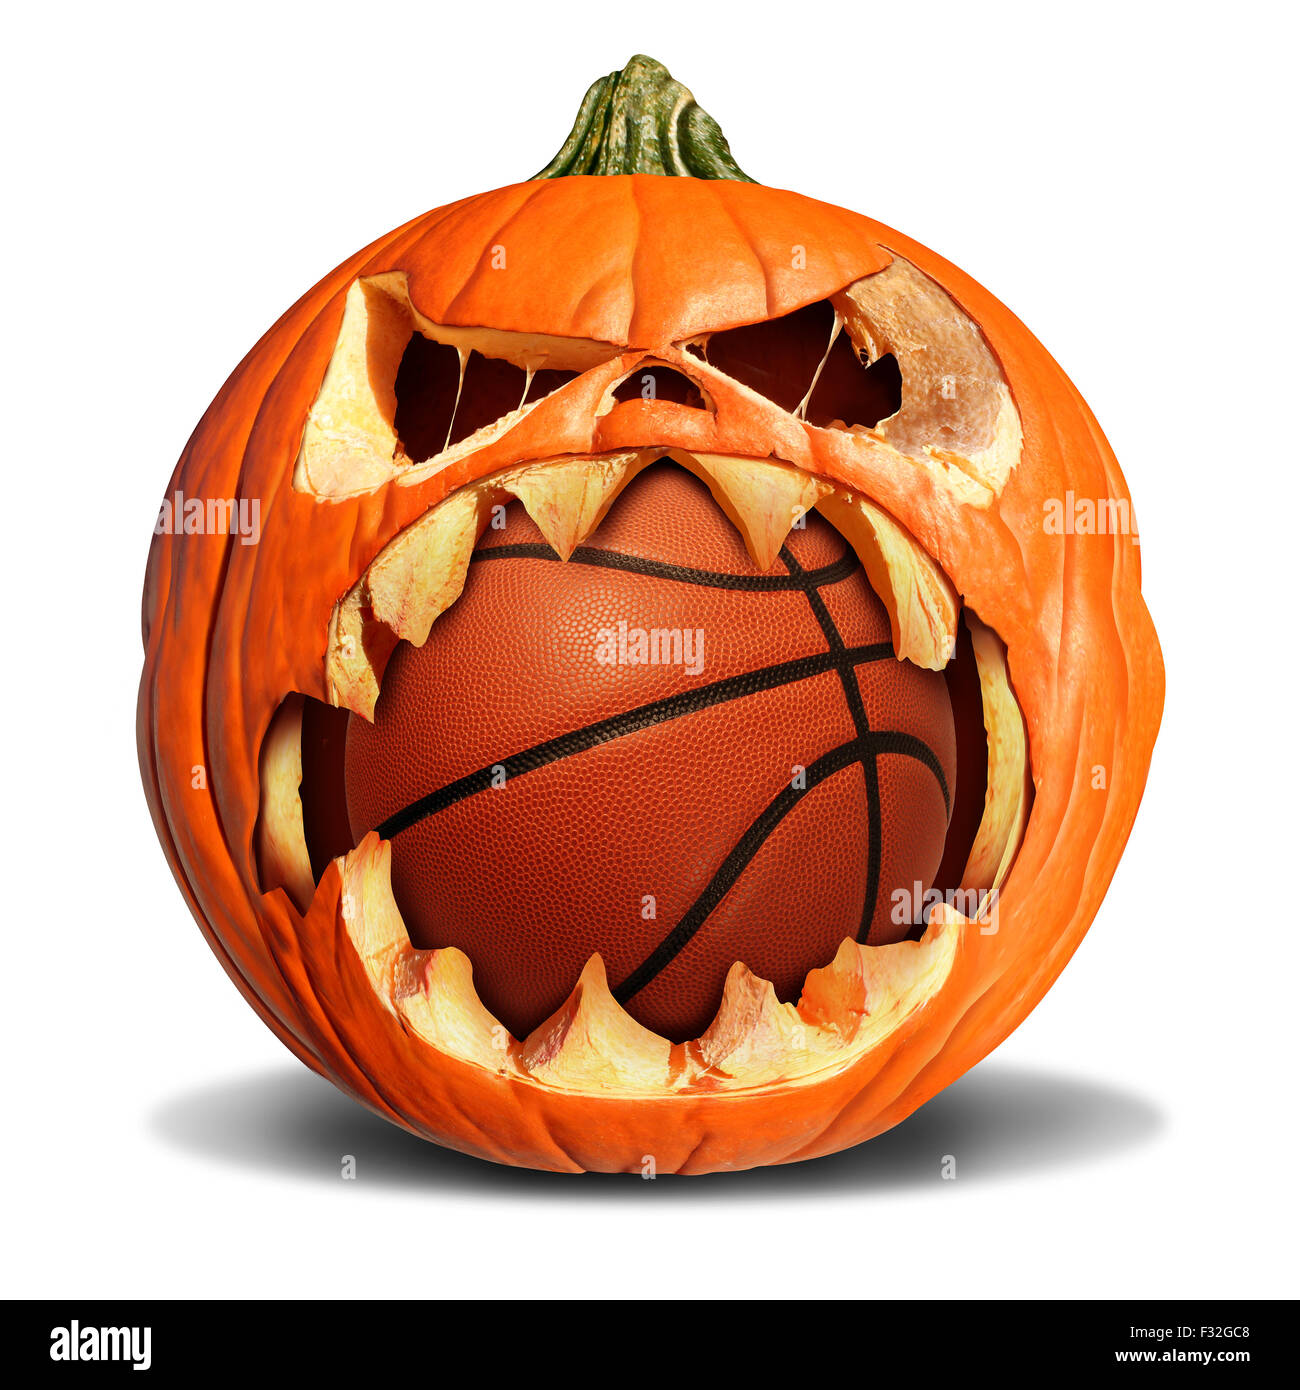 Basketball autumn concept as a pumpkin jack o lantern biting into basketball autumn concept as a pumpkin jack o lantern biting into a leather softball as a symbol for halloween sports and fall sporting events on a white biocorpaavc Choice Image